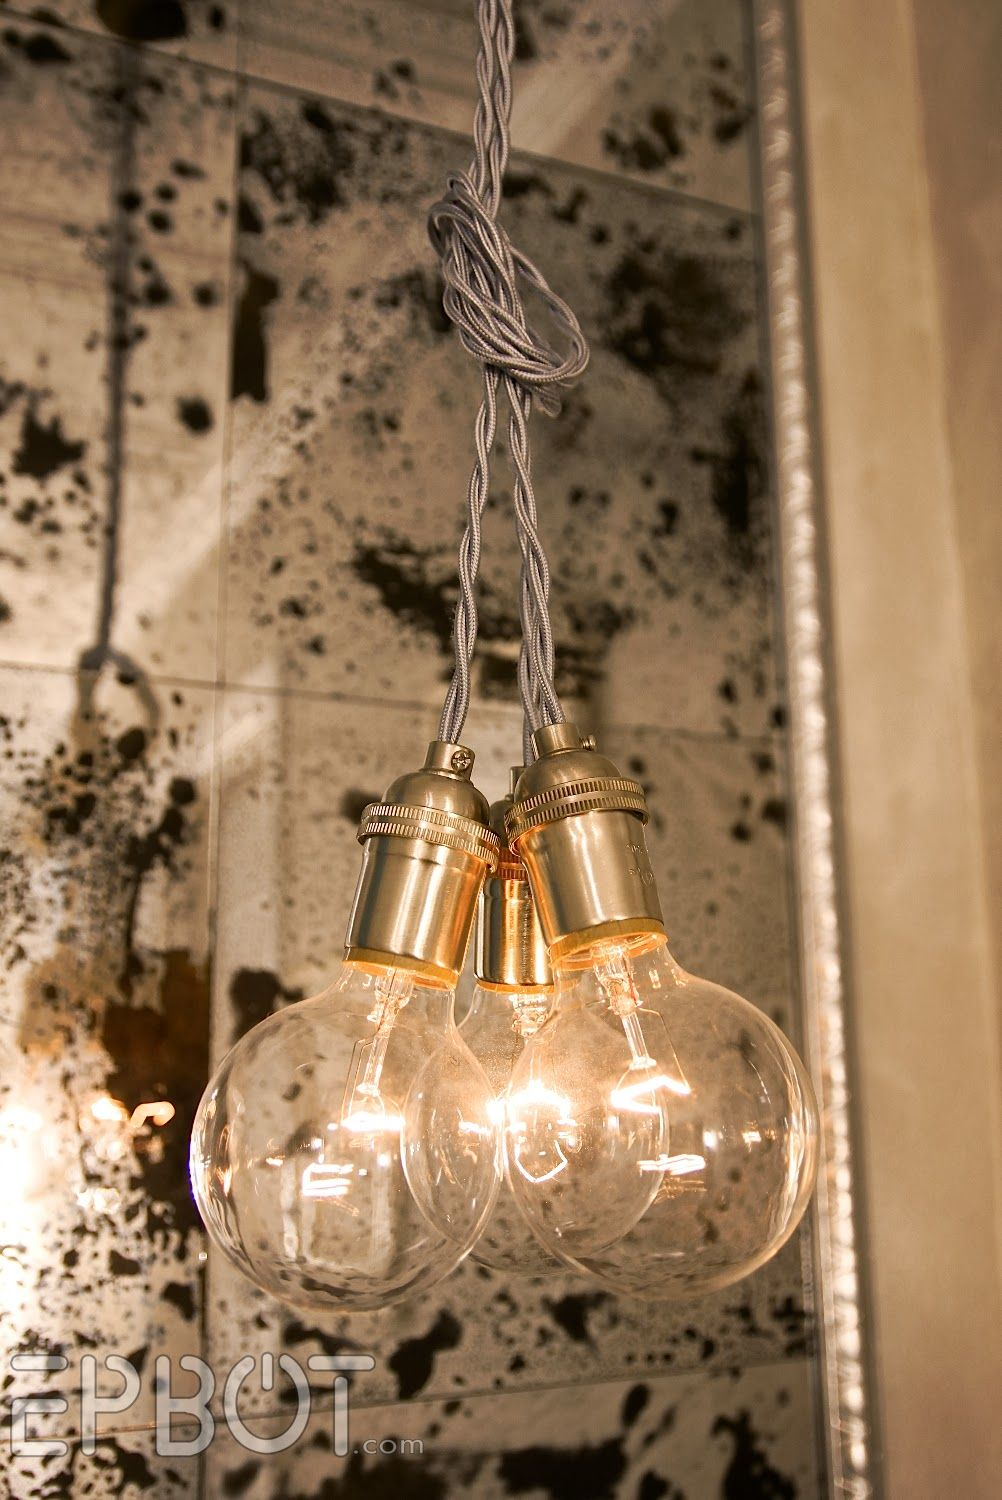 Beleuchtung ideen zu hause bare bones pendant lighting  the vintage style with just a cord and